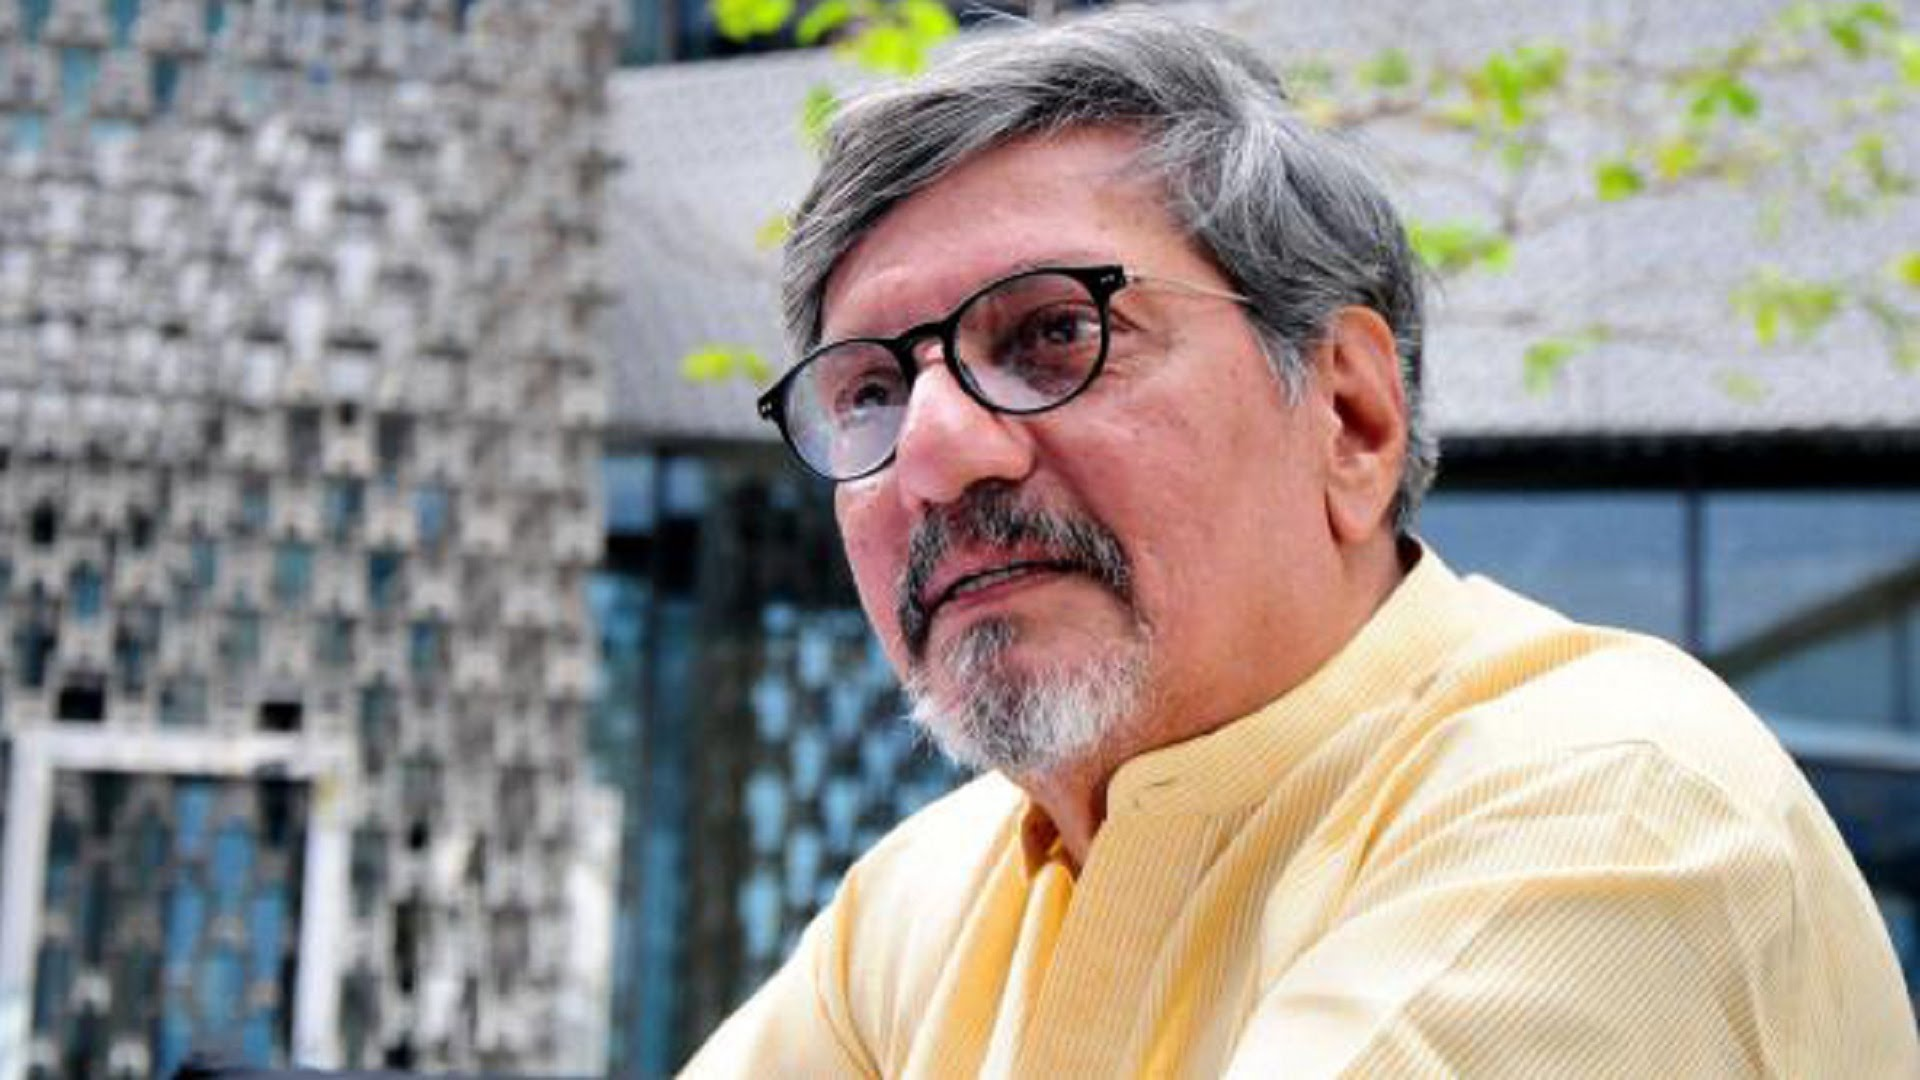 Speech disrupted, Amol Palekar says will question govt NGMA policy change